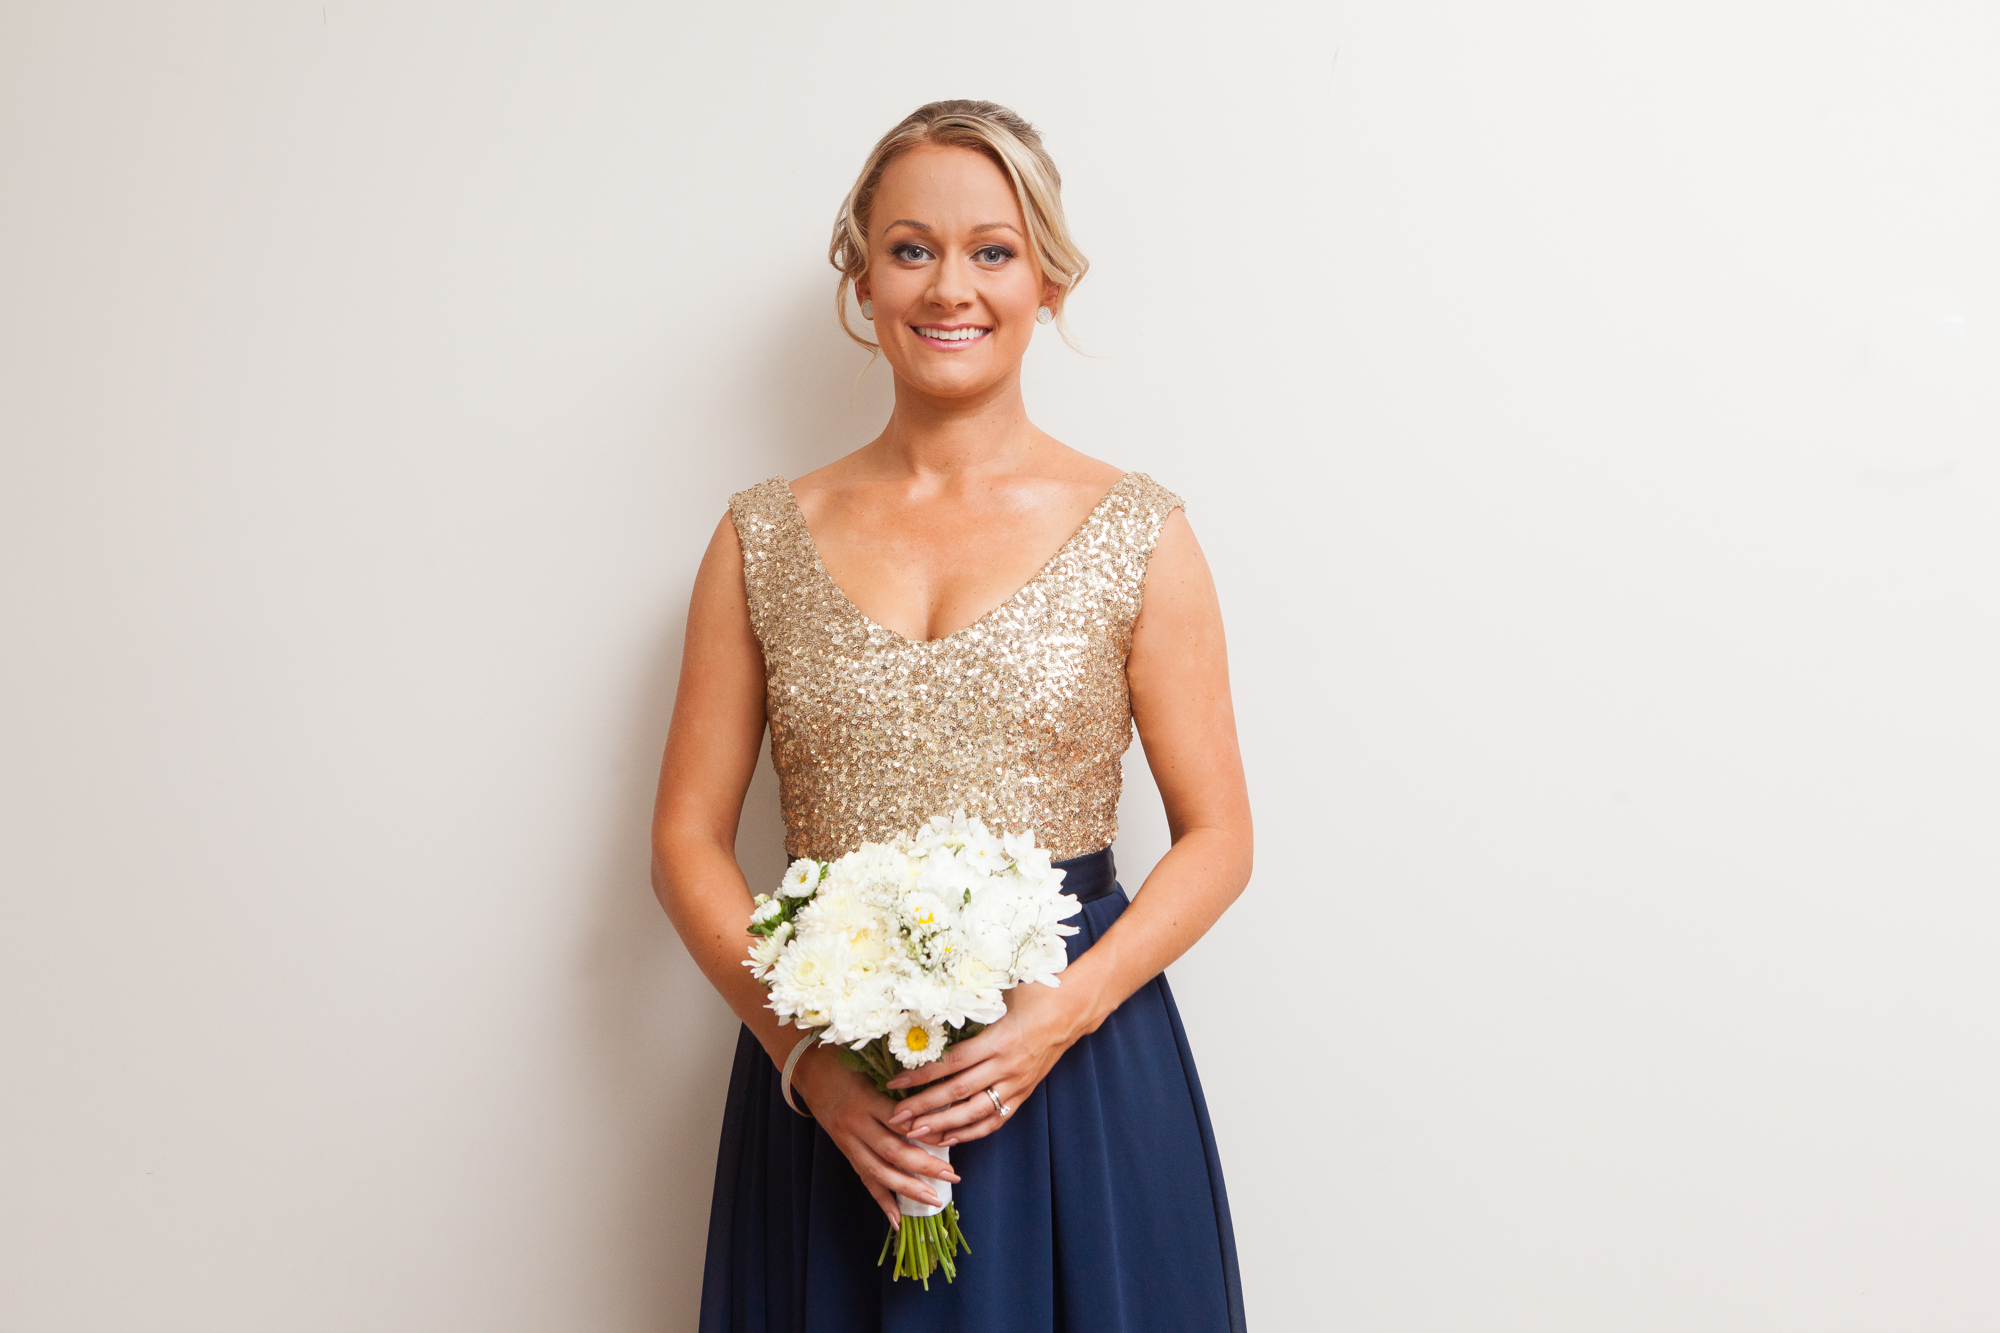 Nathan+Morgan_Wedding-60.jpg